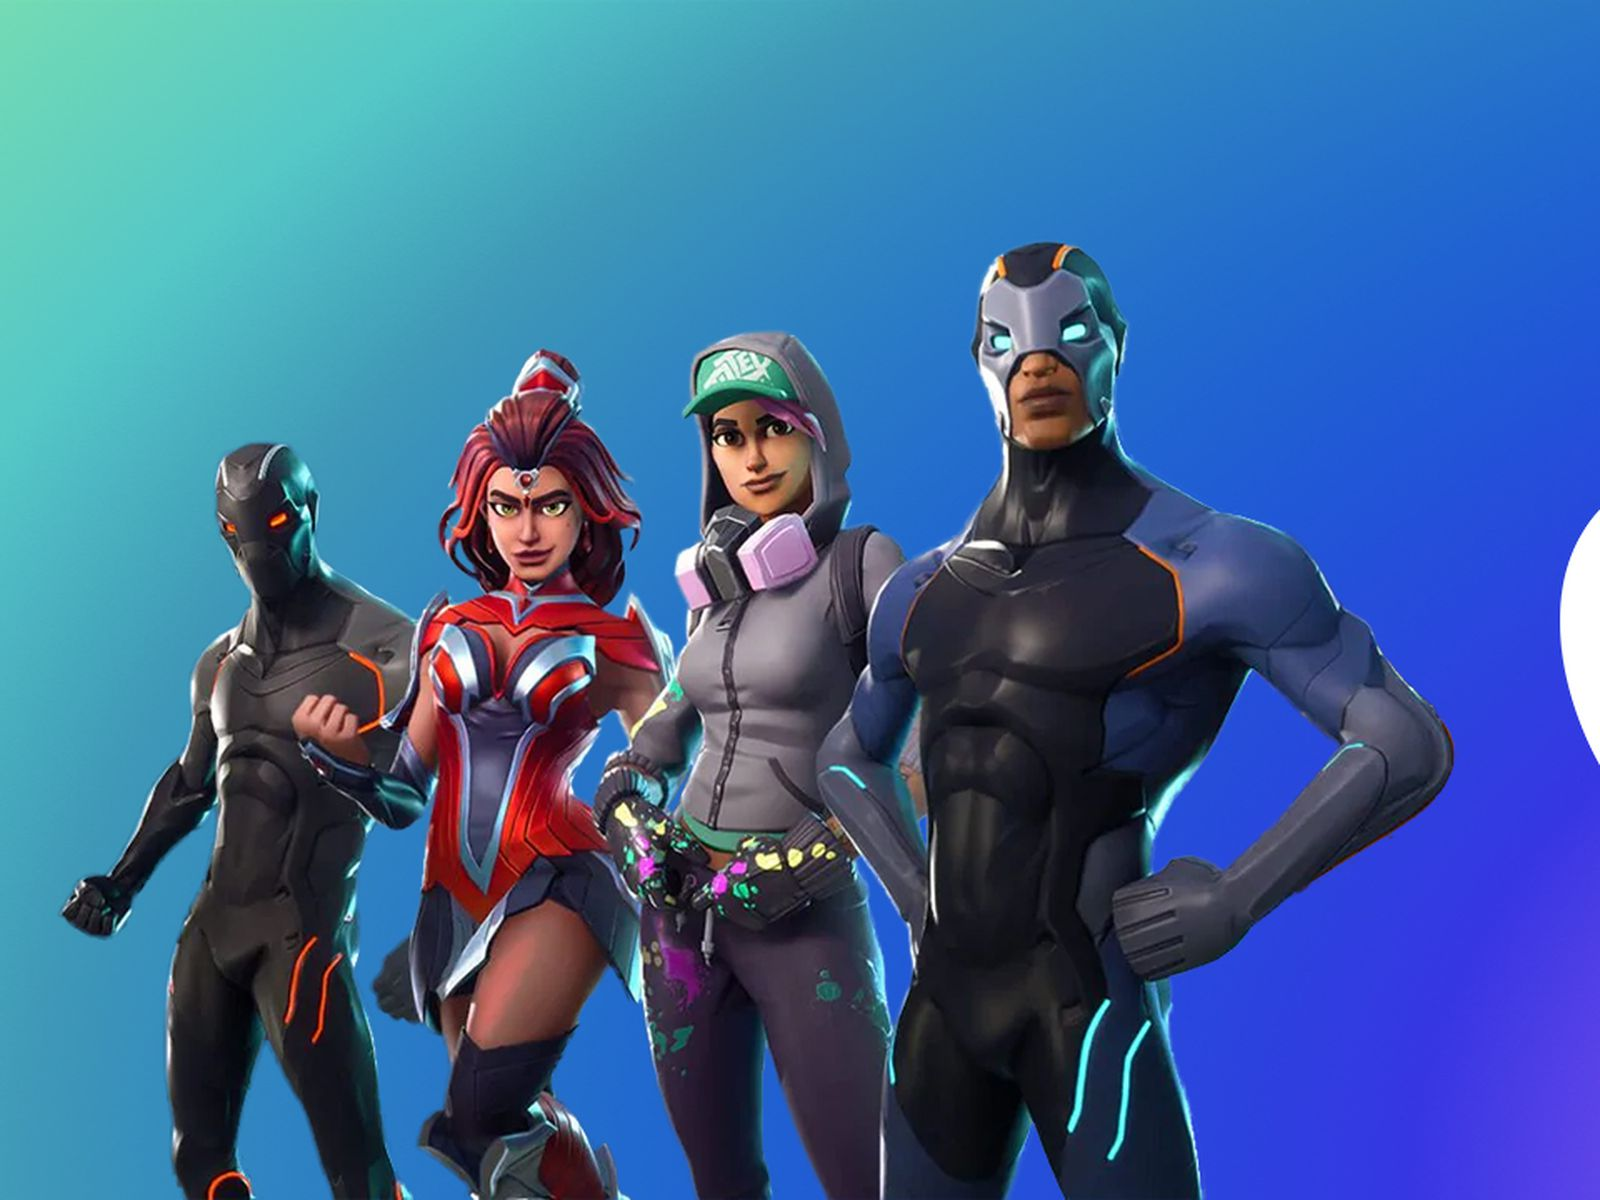 What Platform Is Fortnite Run On Fortnite For Ios And Macos Will No Longer Be Cross Platform When New Season Launches Macrumors